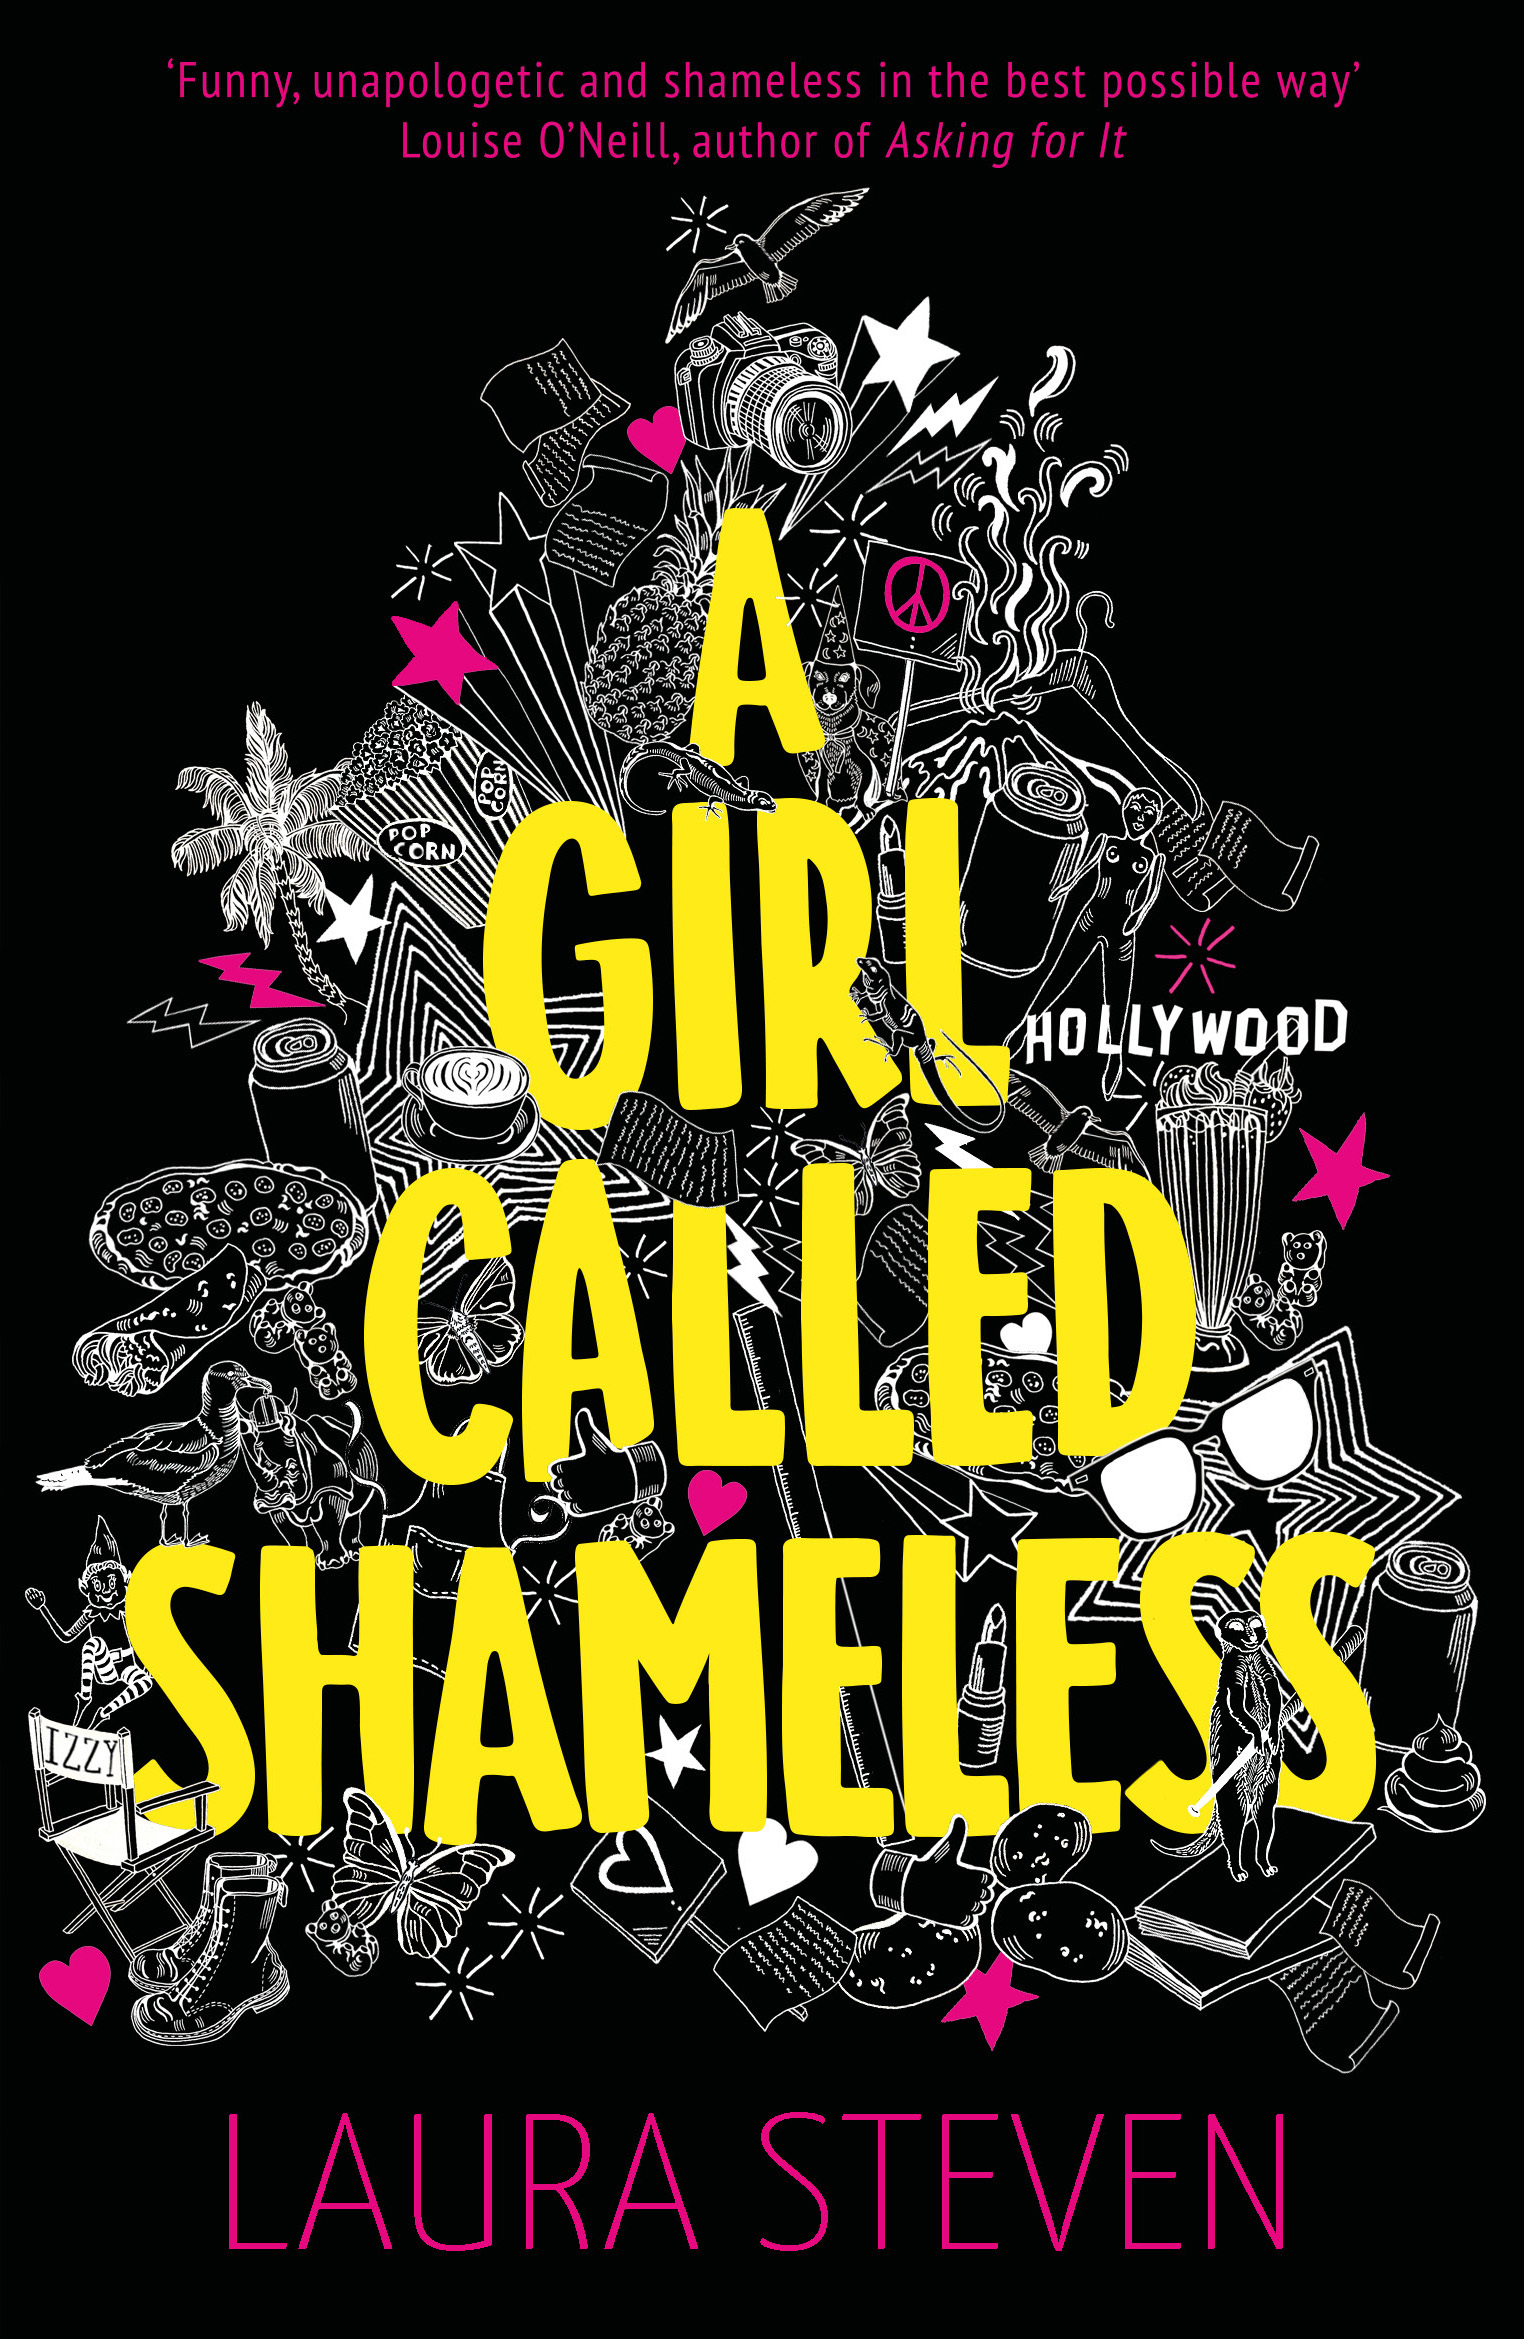 A-Girl-Called-Shameless-by-Laura-Steven.jpg